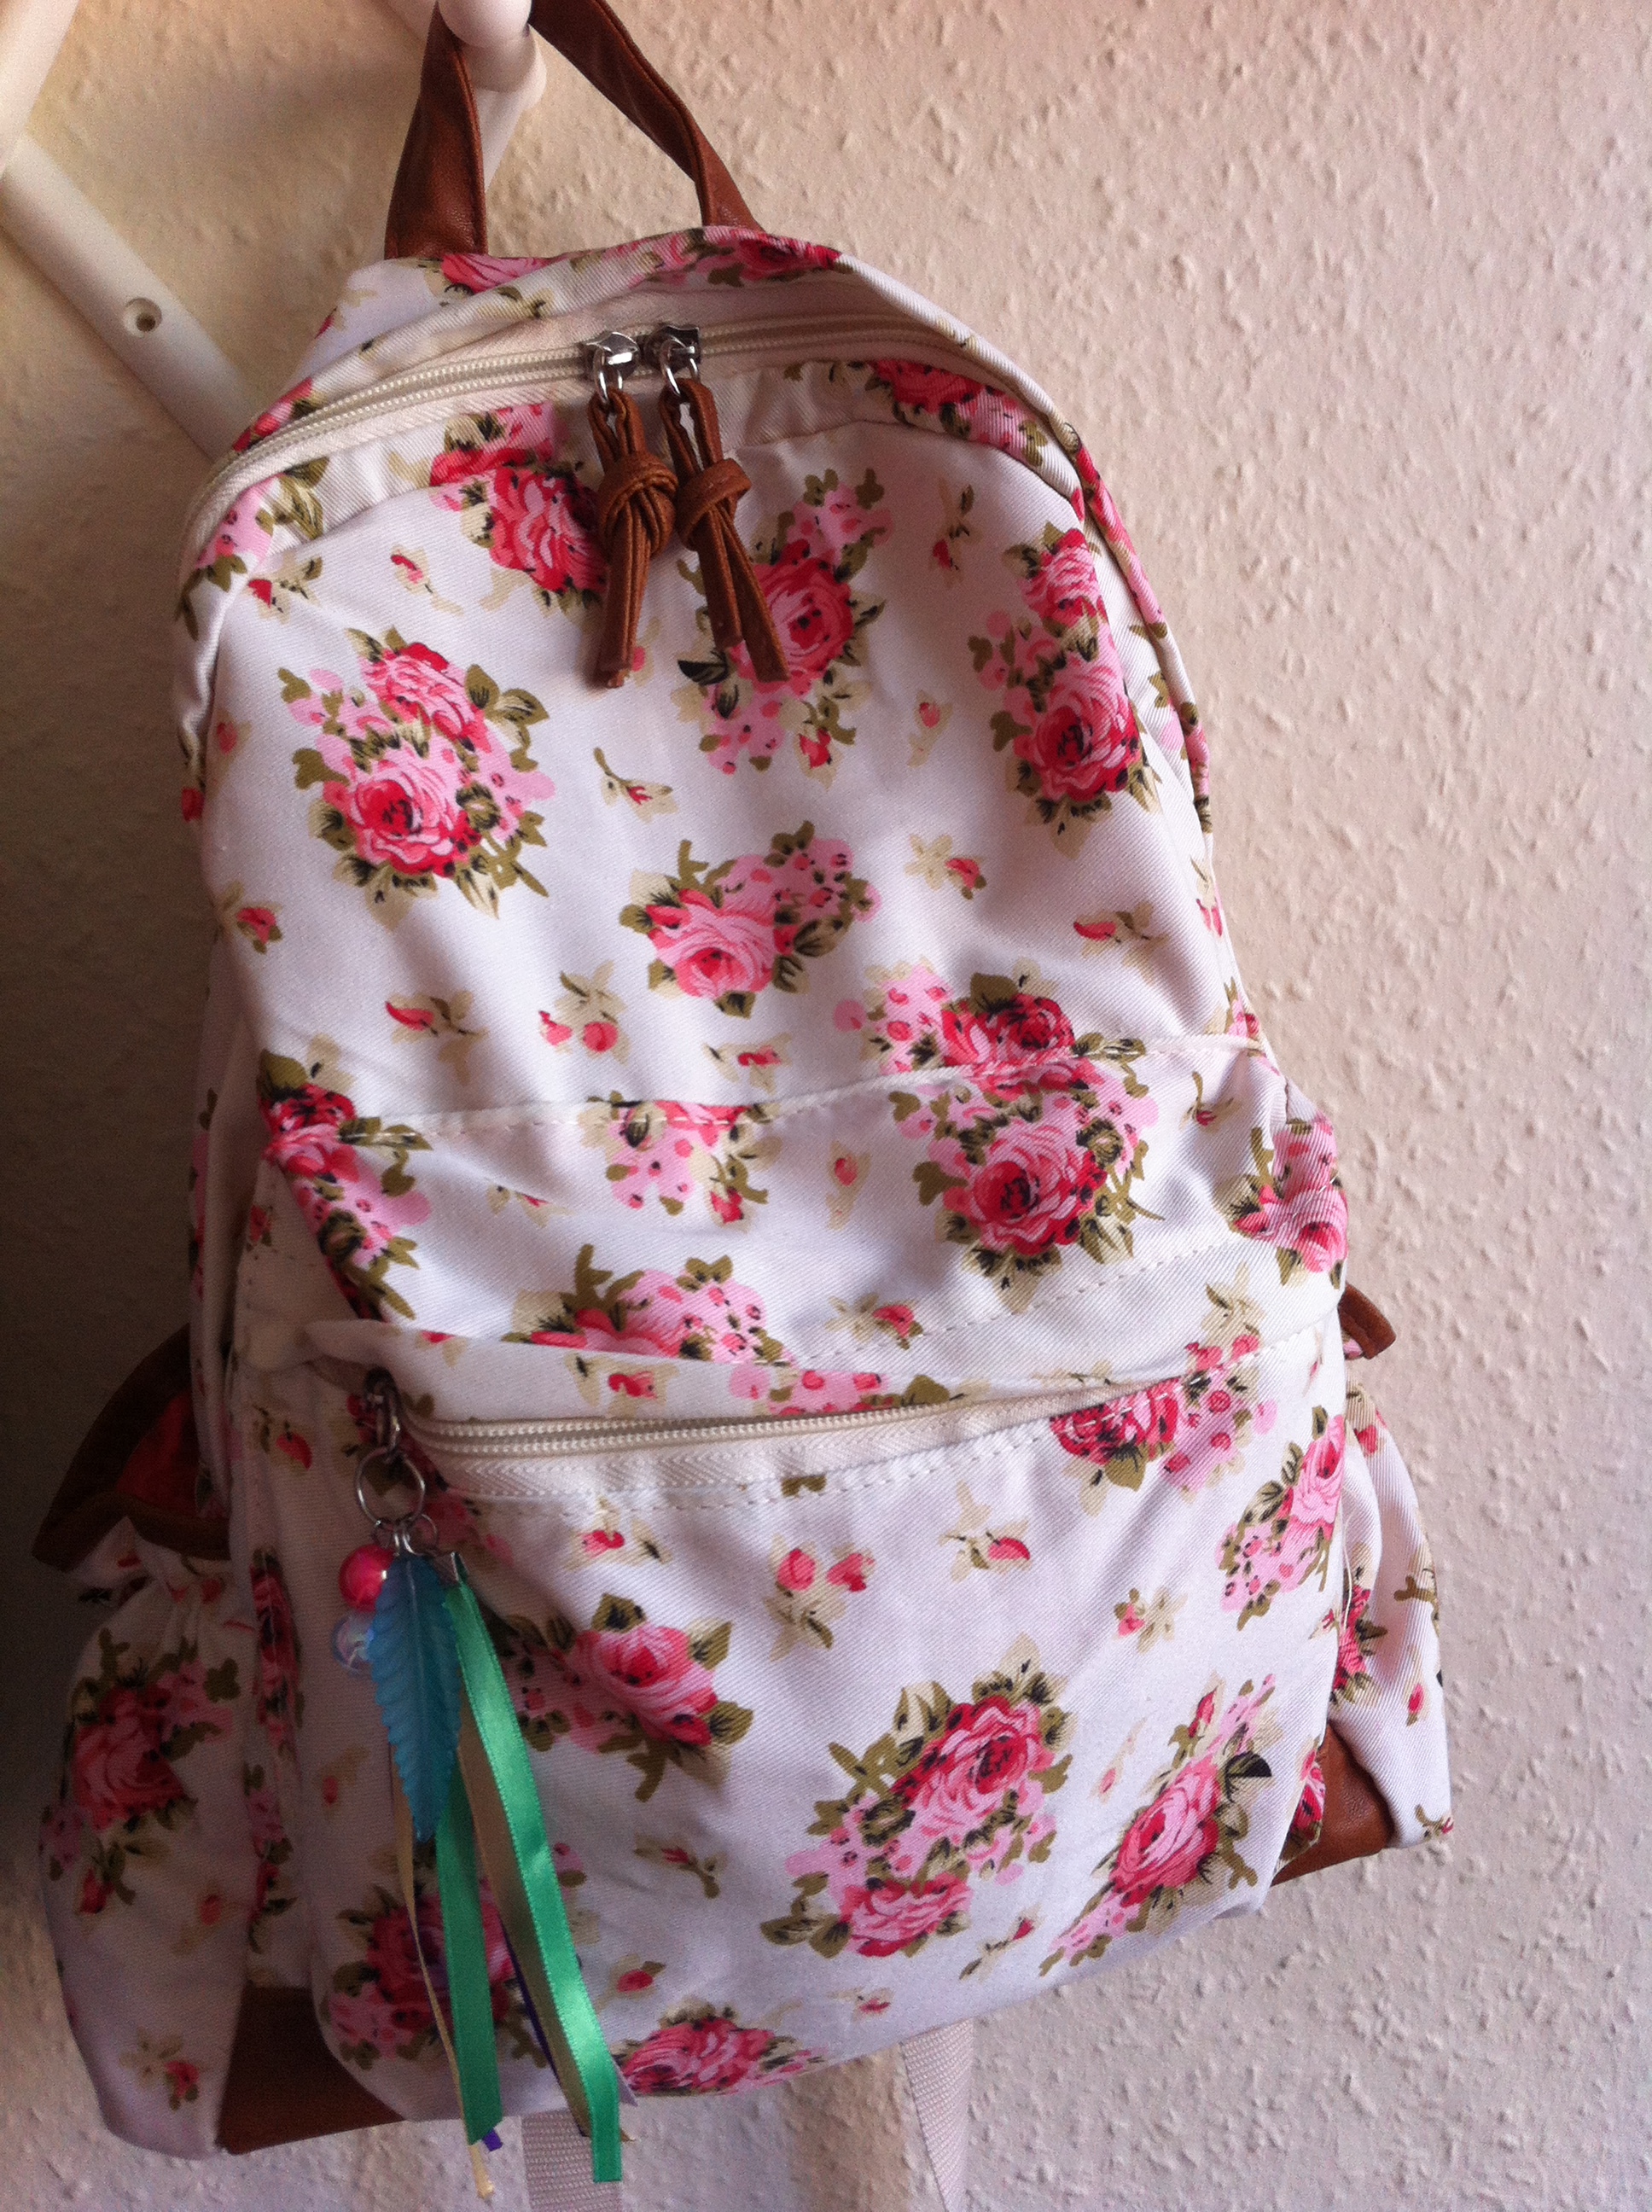 Cute bags for school ebay - Primark Floral Backpack Vintage Backpacks